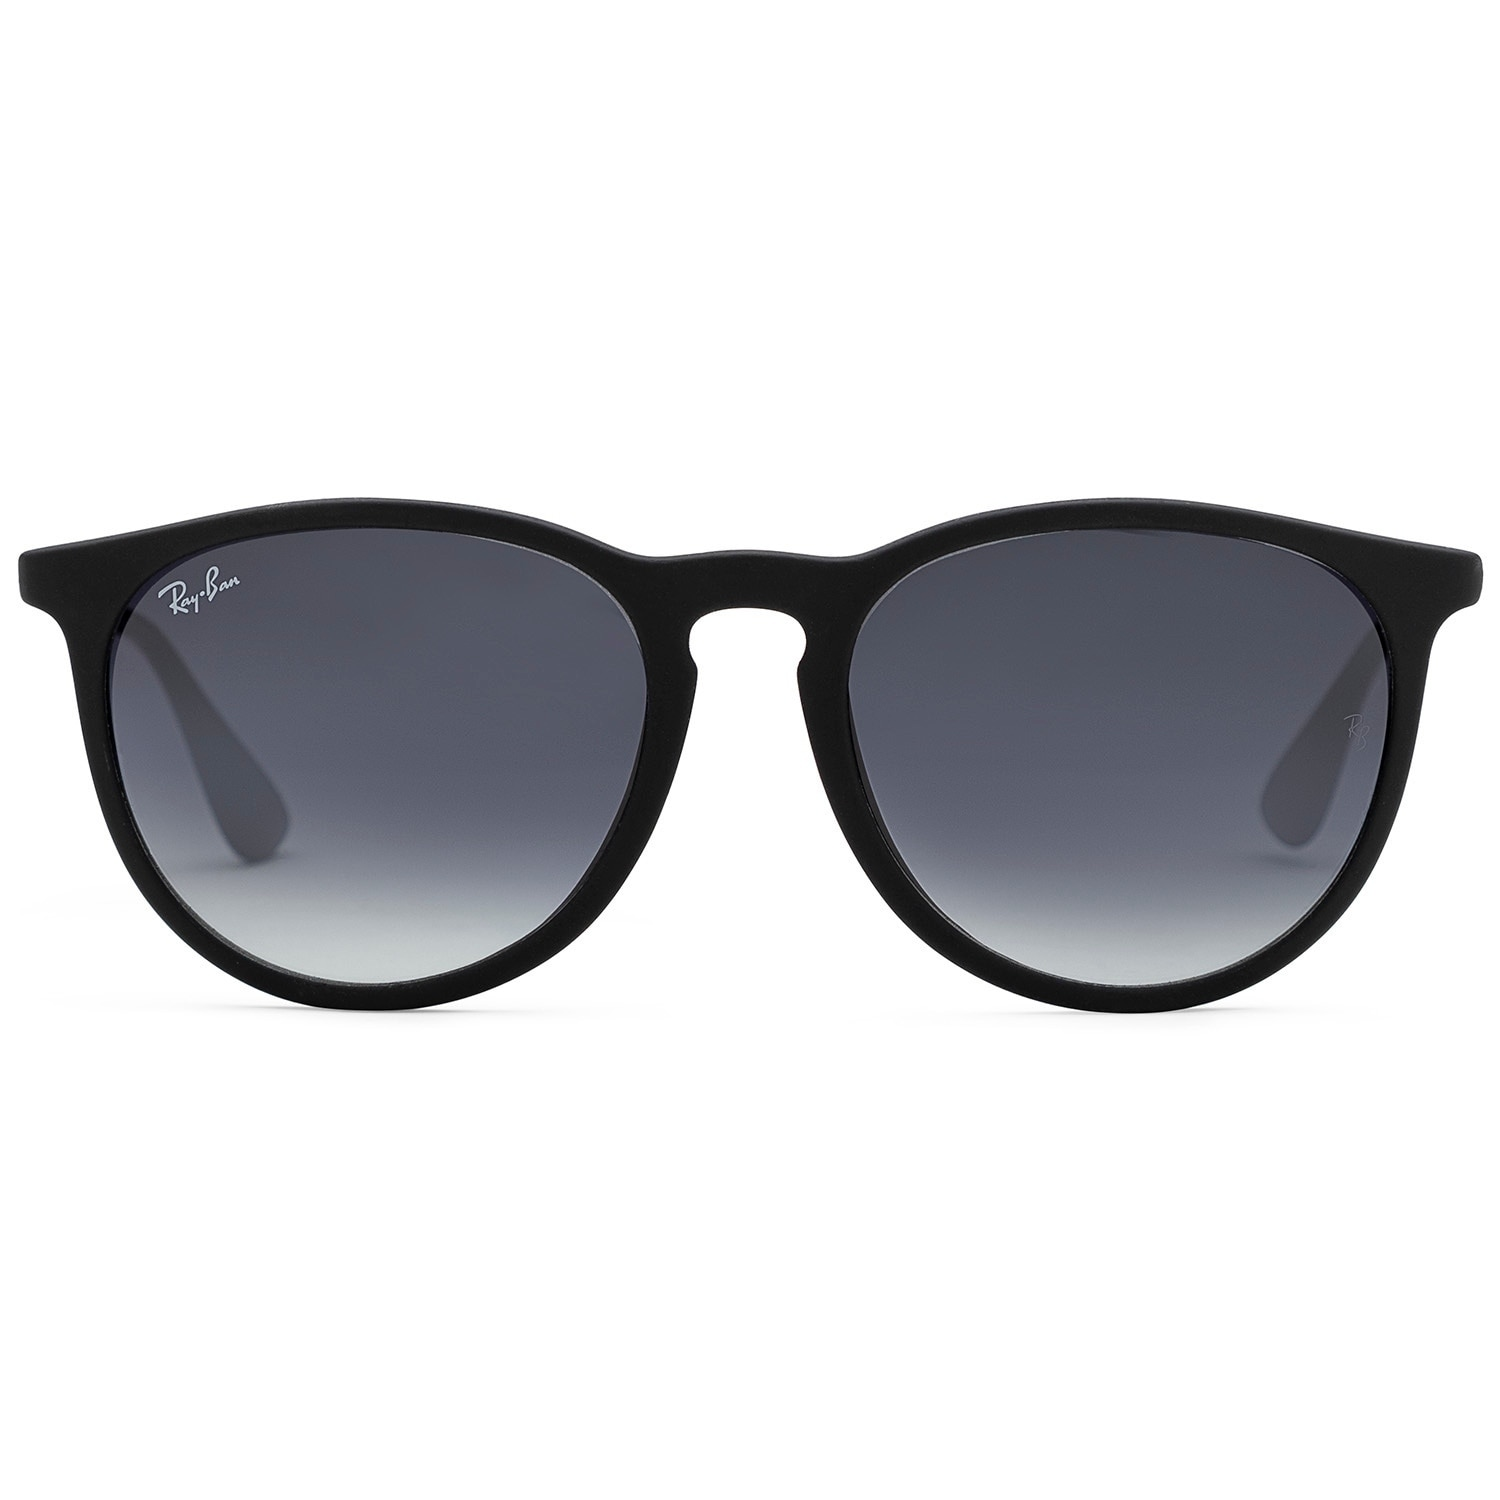 a0e385af4a2 Ray-Ban Women's Sunglasses | Find Great Sunglasses Deals Shopping at  Overstock